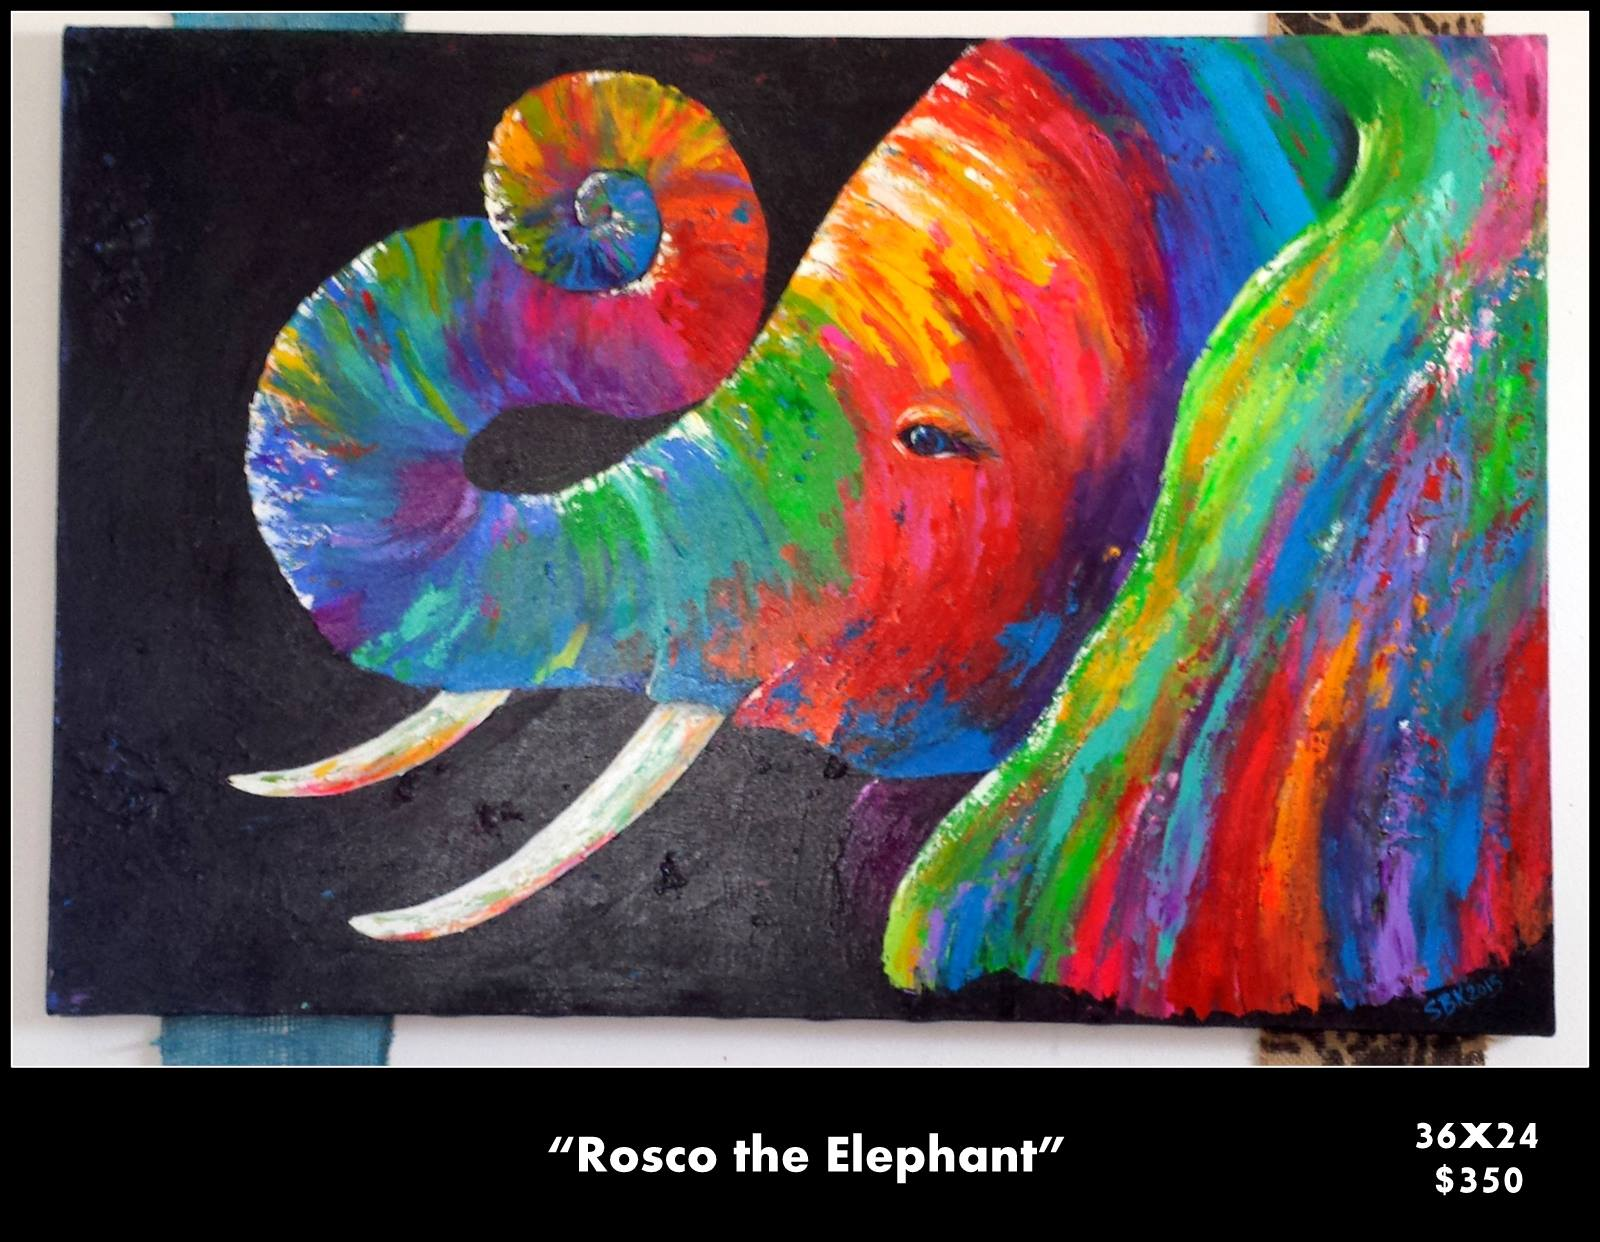 Rosco the Elephant.jpg